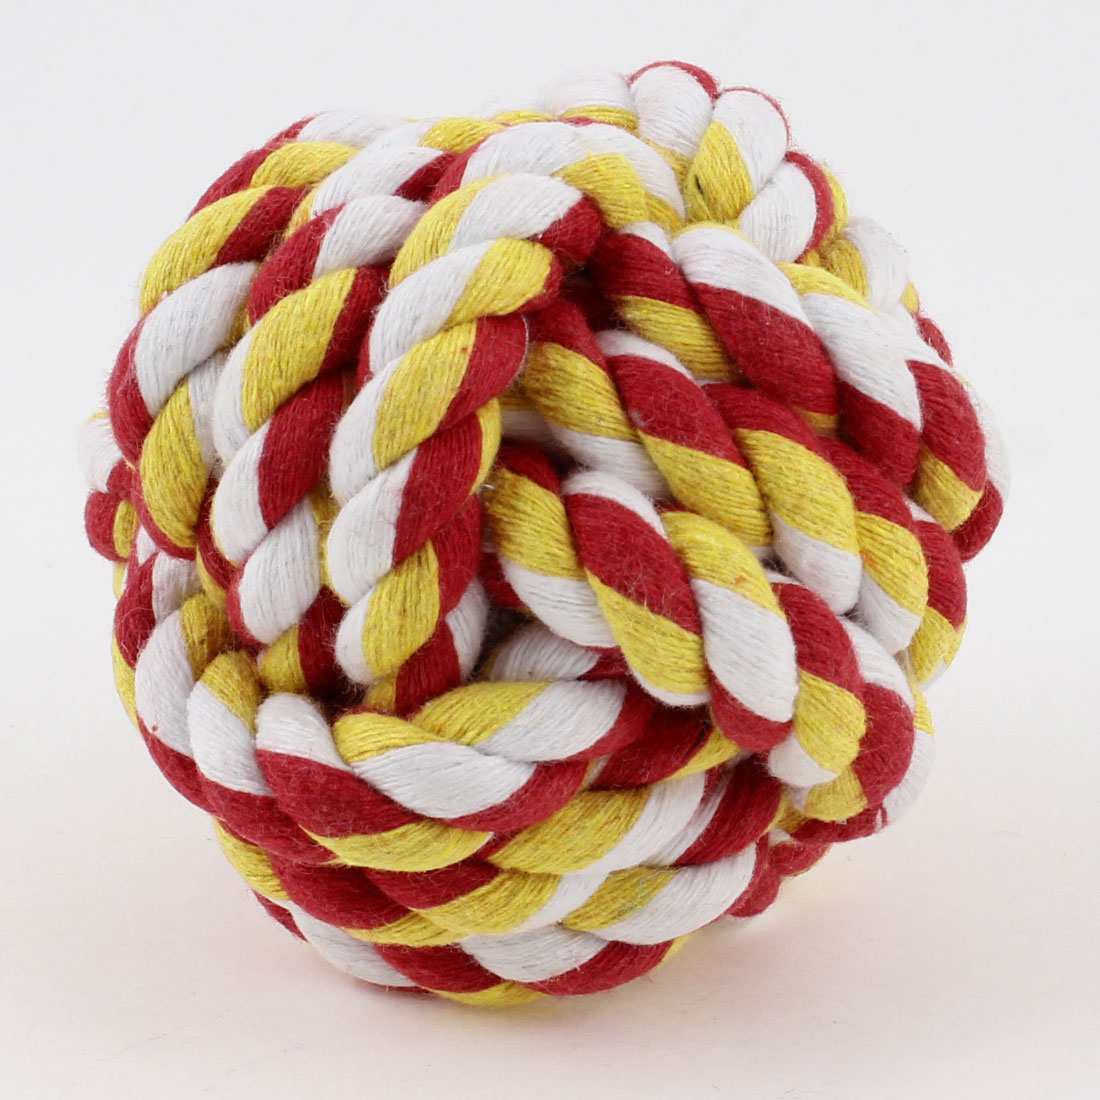 "Red White Yellow 2.8"" Diameter Cotton Strand Cord Woven Knot Dog Rope Ball Toy"